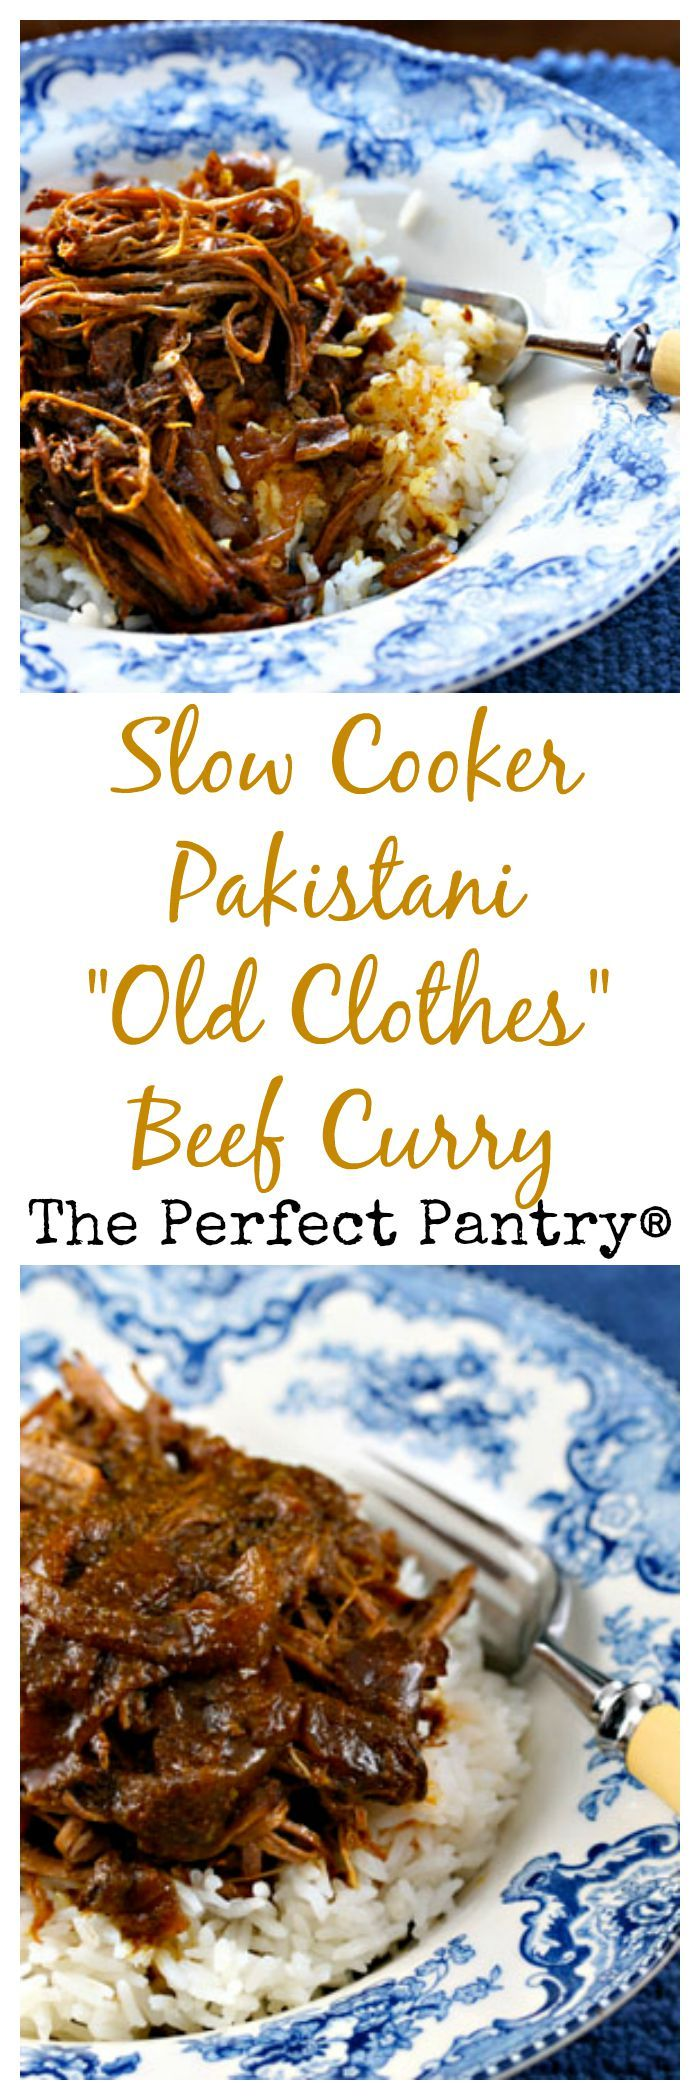 Pakistani 'old clothes' beef curry: sounds exotic, but the slow cooker makes it easy.